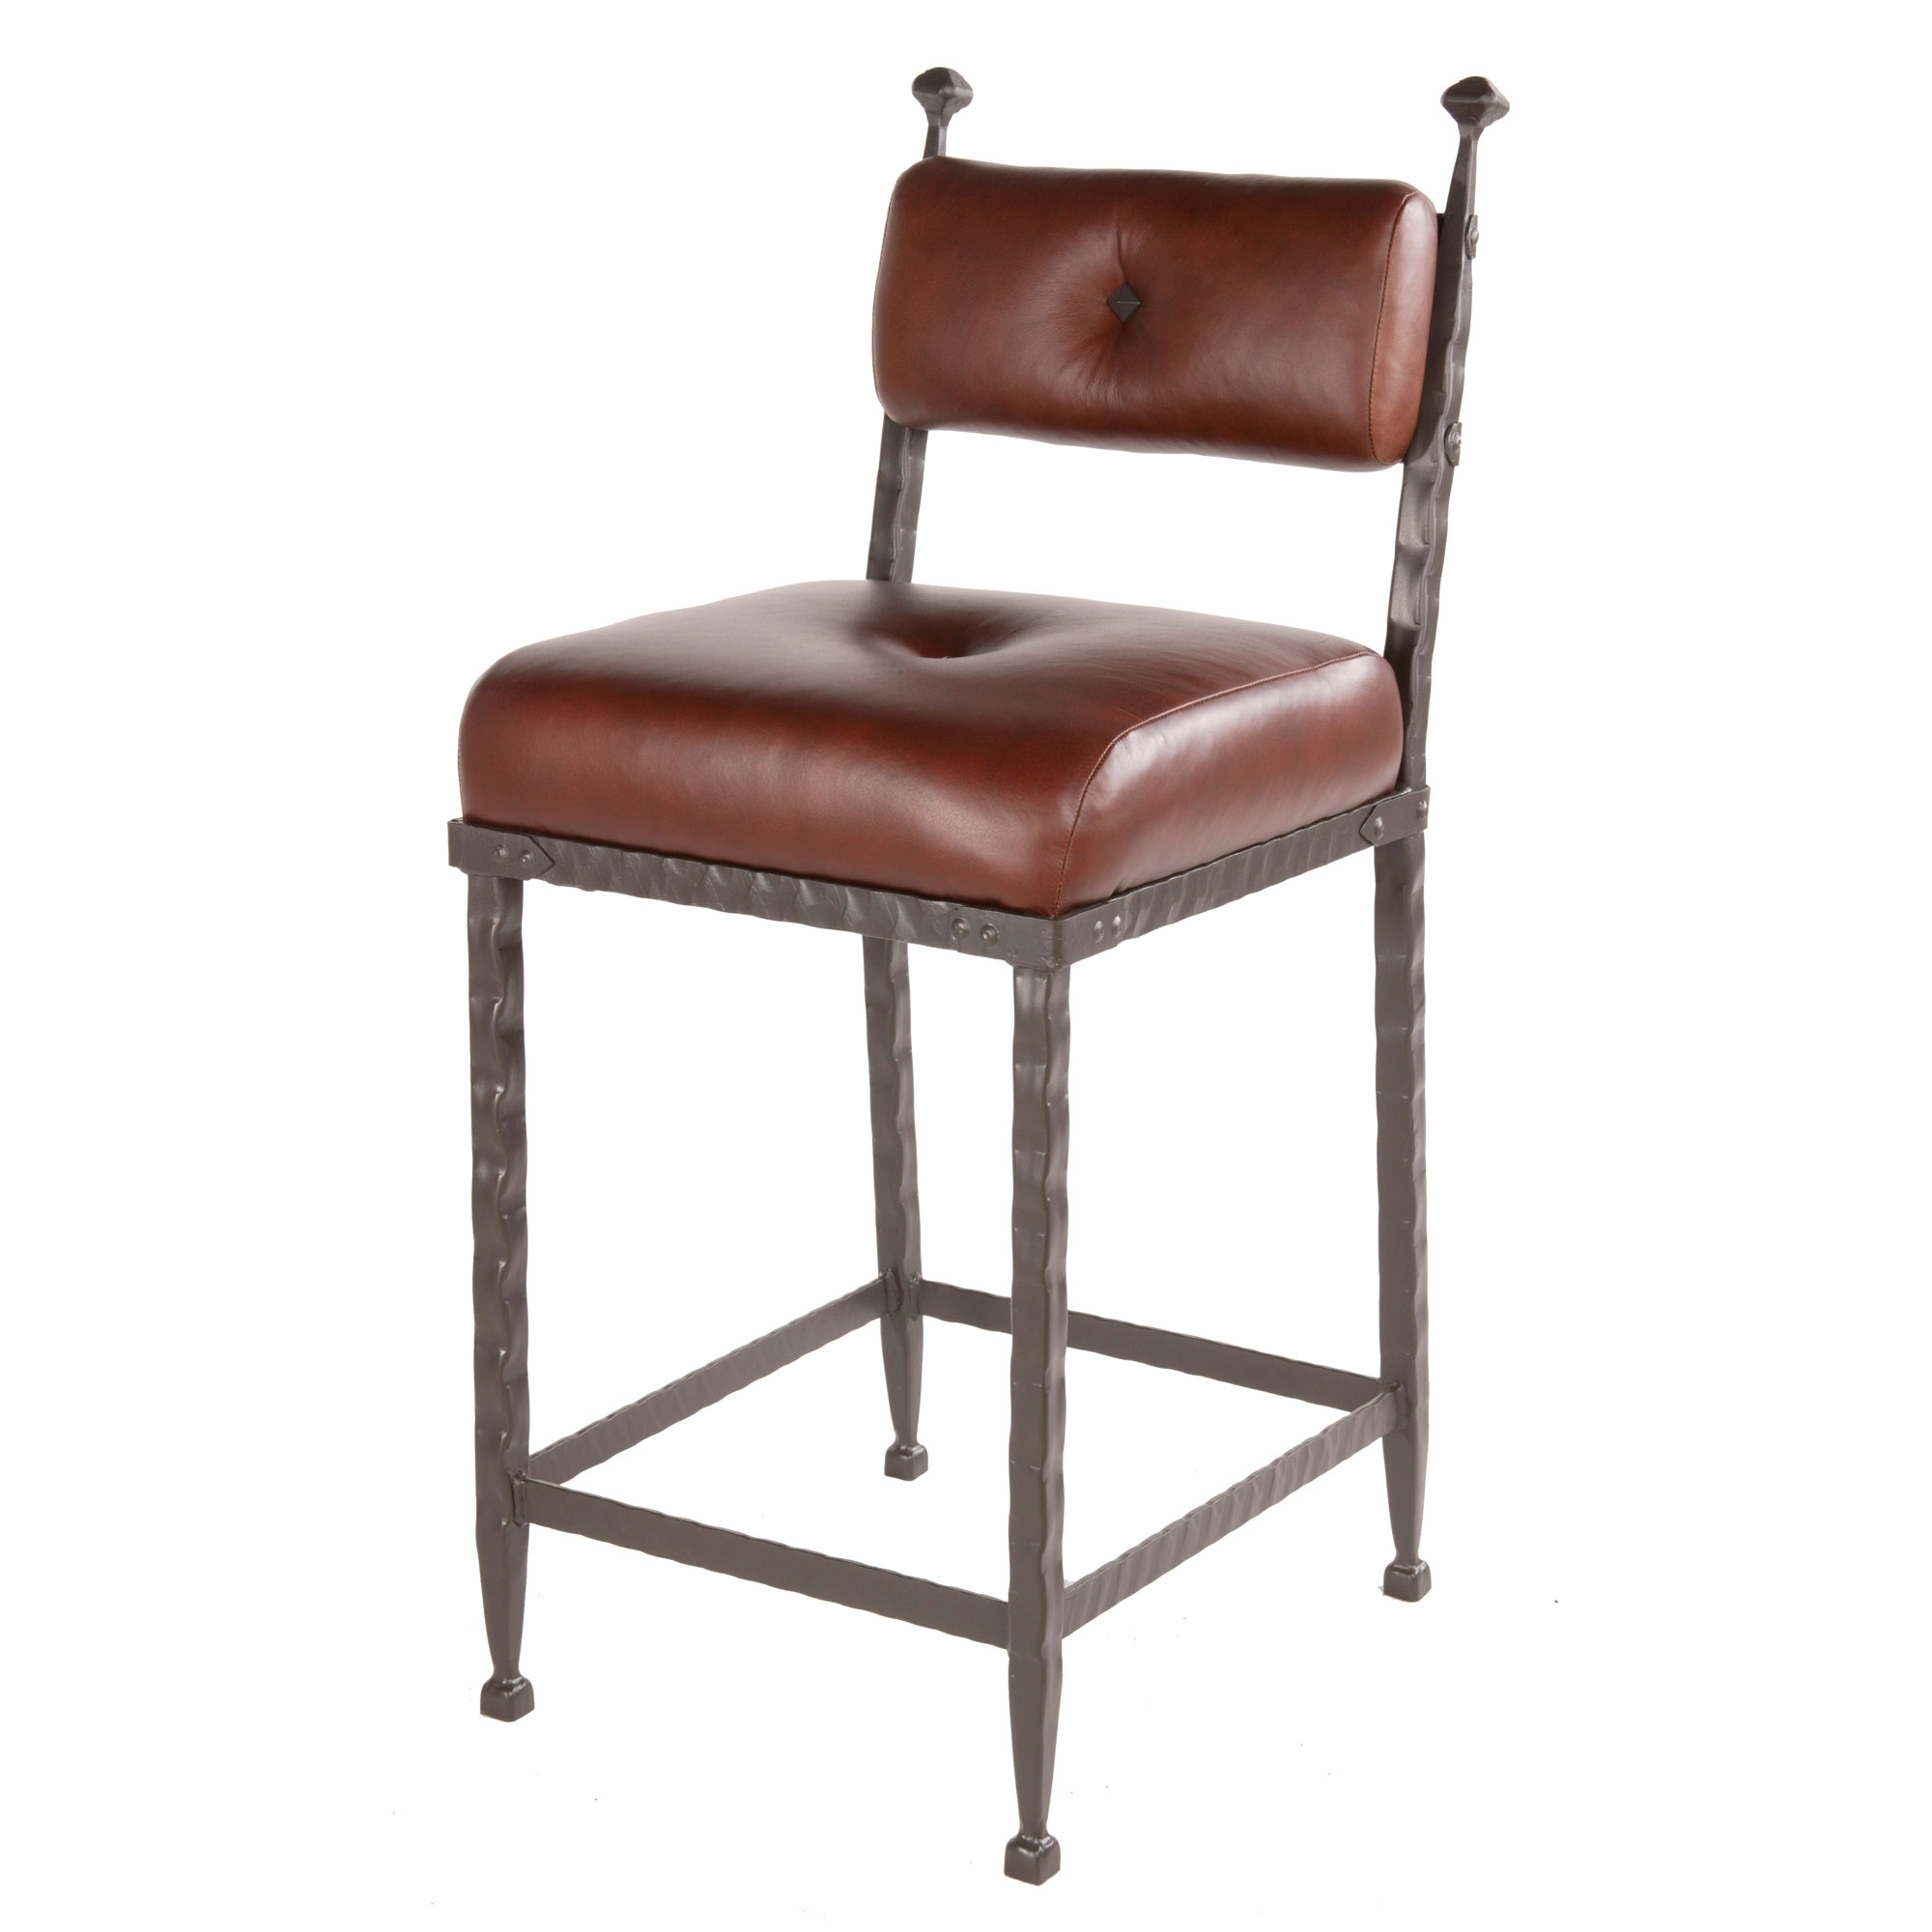 Forest Hill Wrought Iron Counter Stool 25 in Seat Height : TWI 30 122 2 from timelesswroughtiron.com size 2000 x 2000 jpeg 409kB